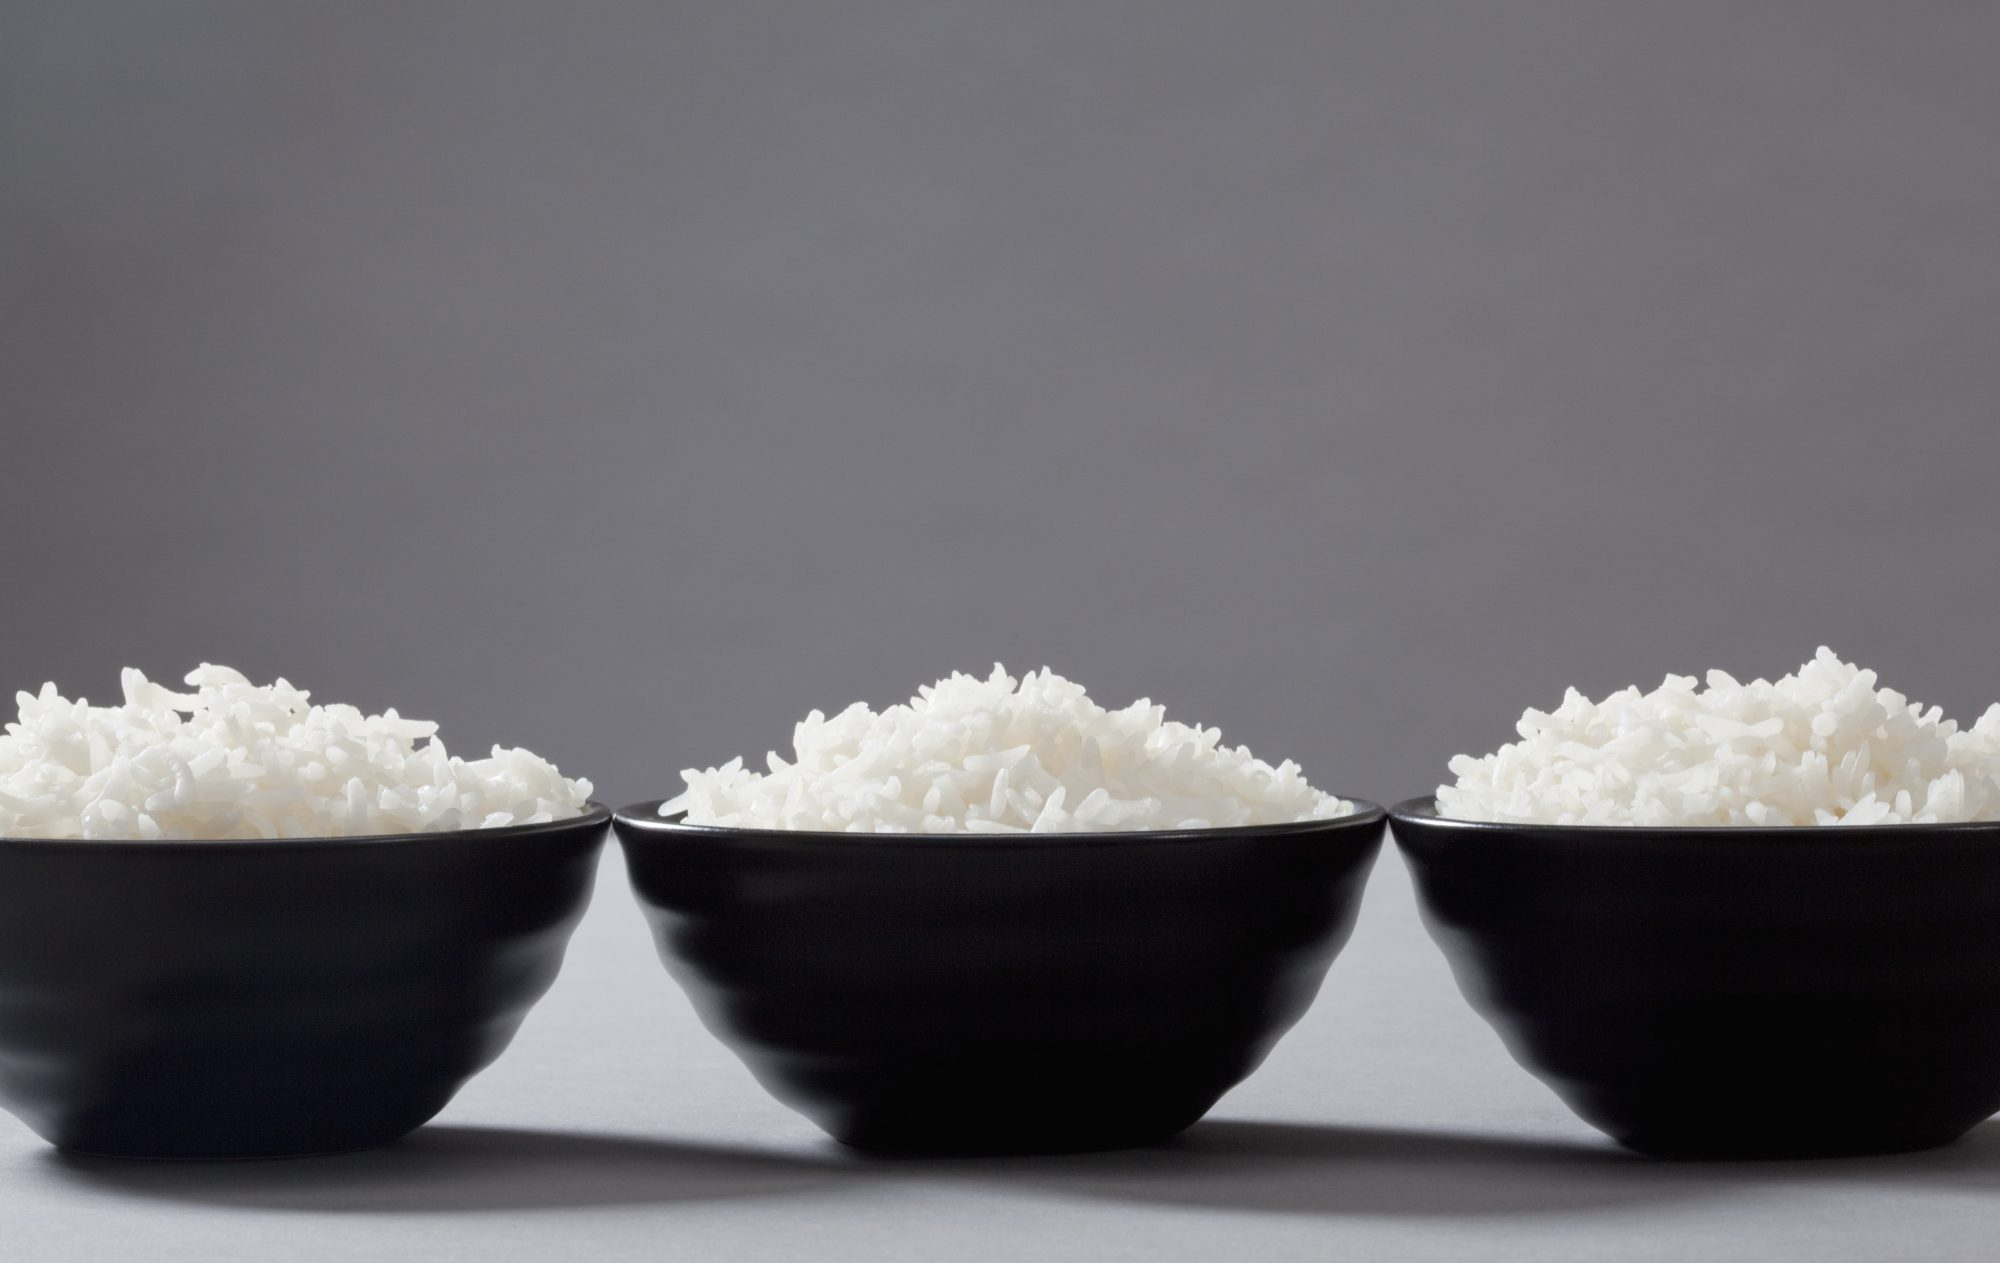 02152019-Getty-Rice-Image